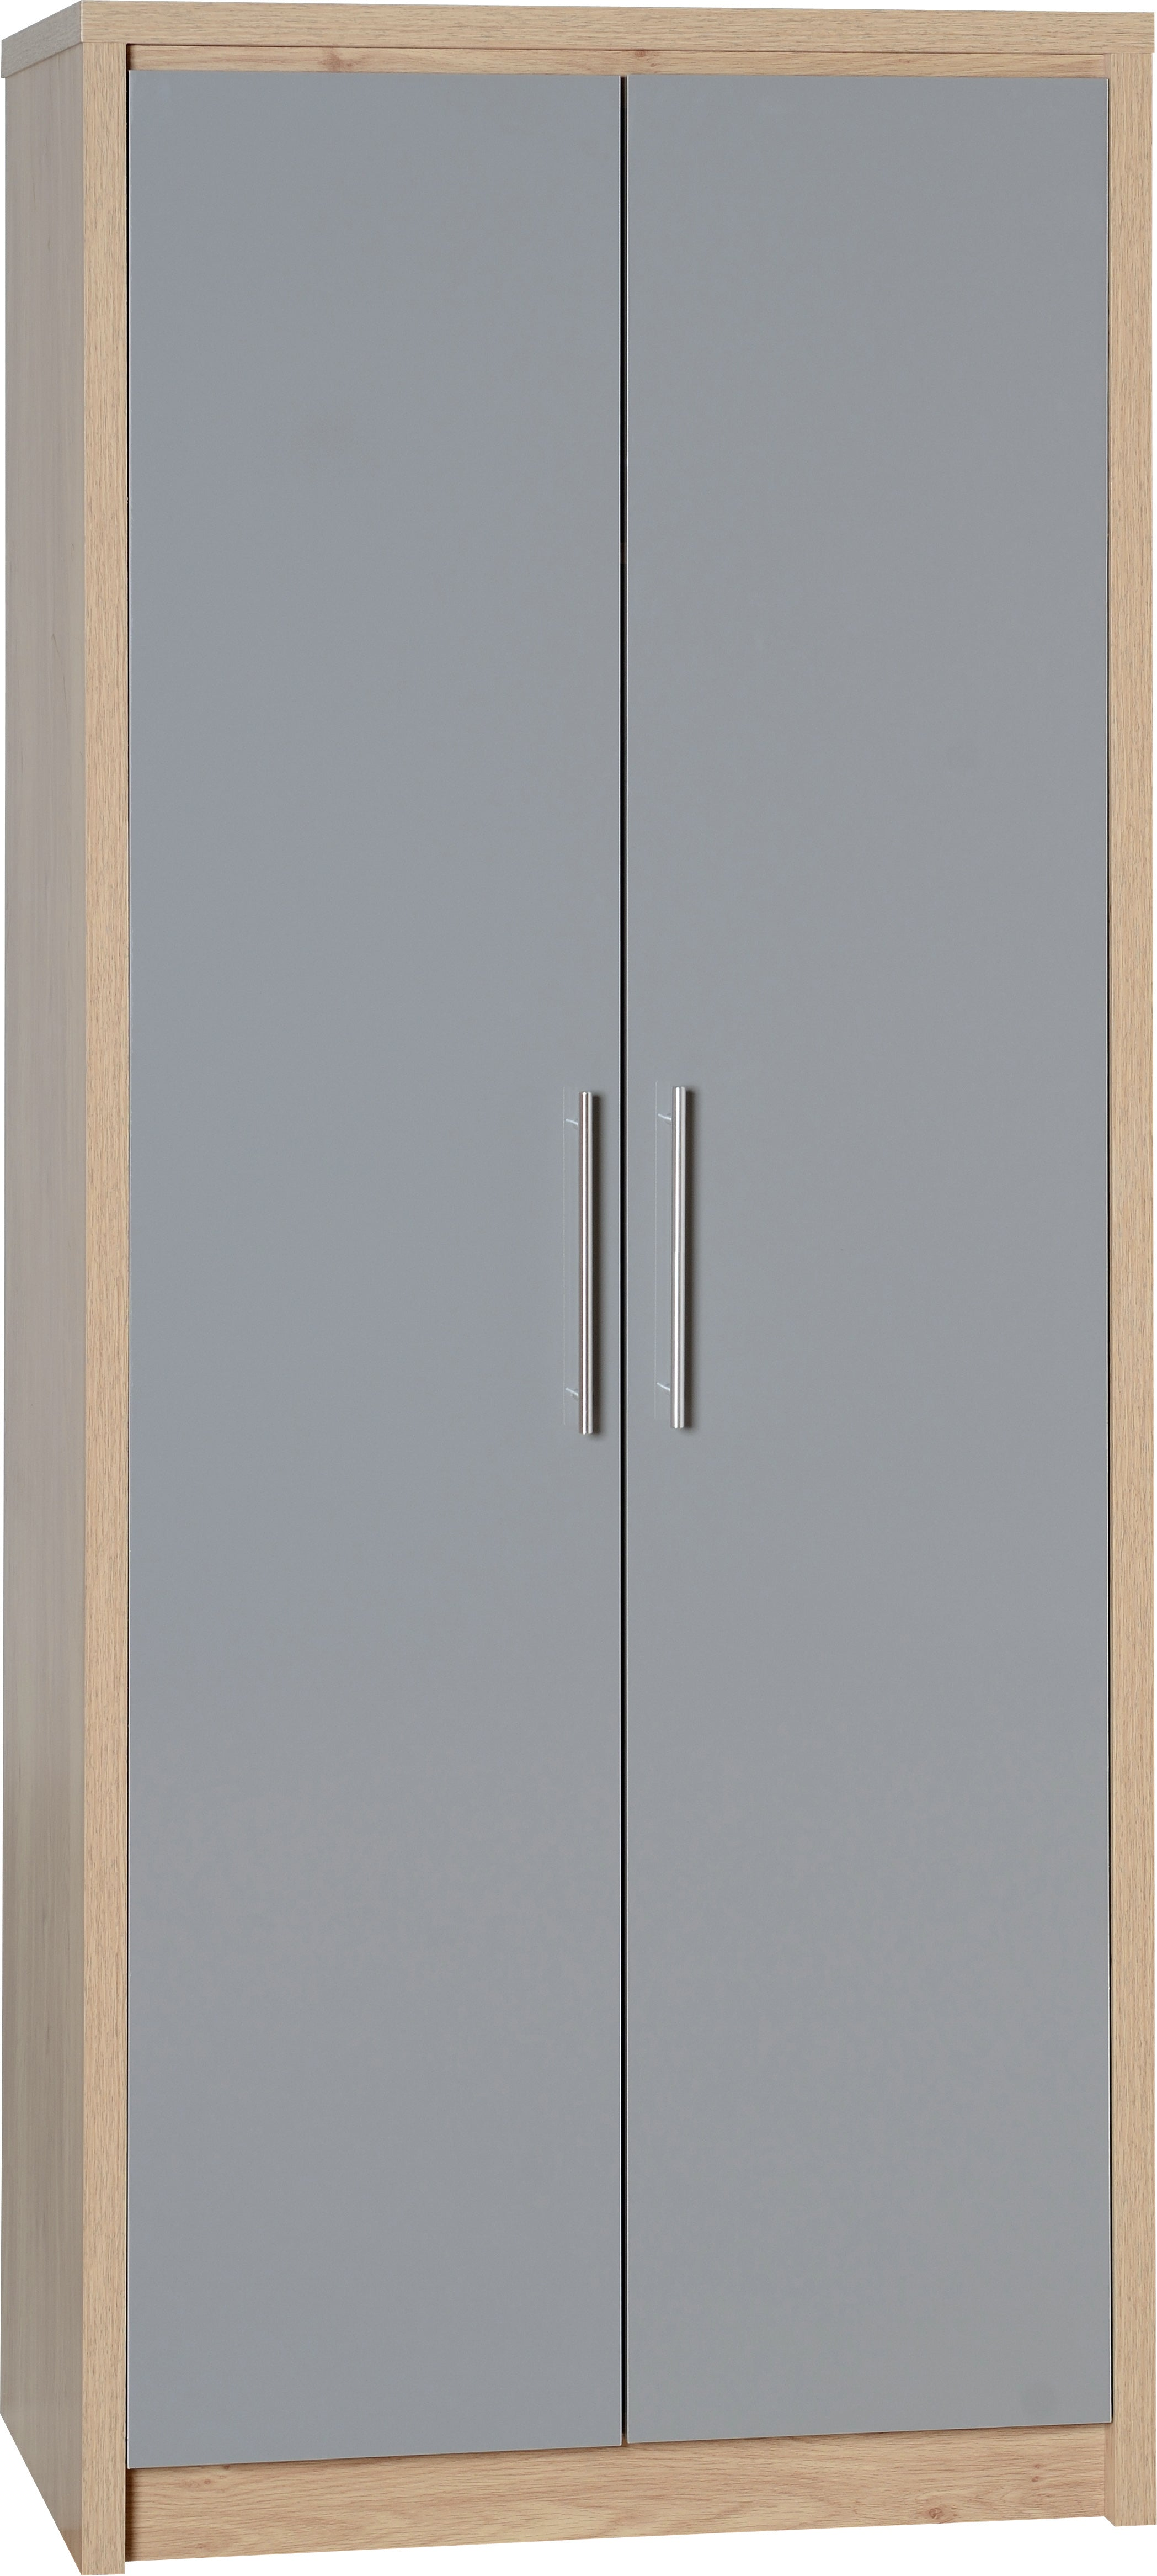 lawrence uk wardrobes bedroom special fitted grey furniture wardrobe gloss buy minhas